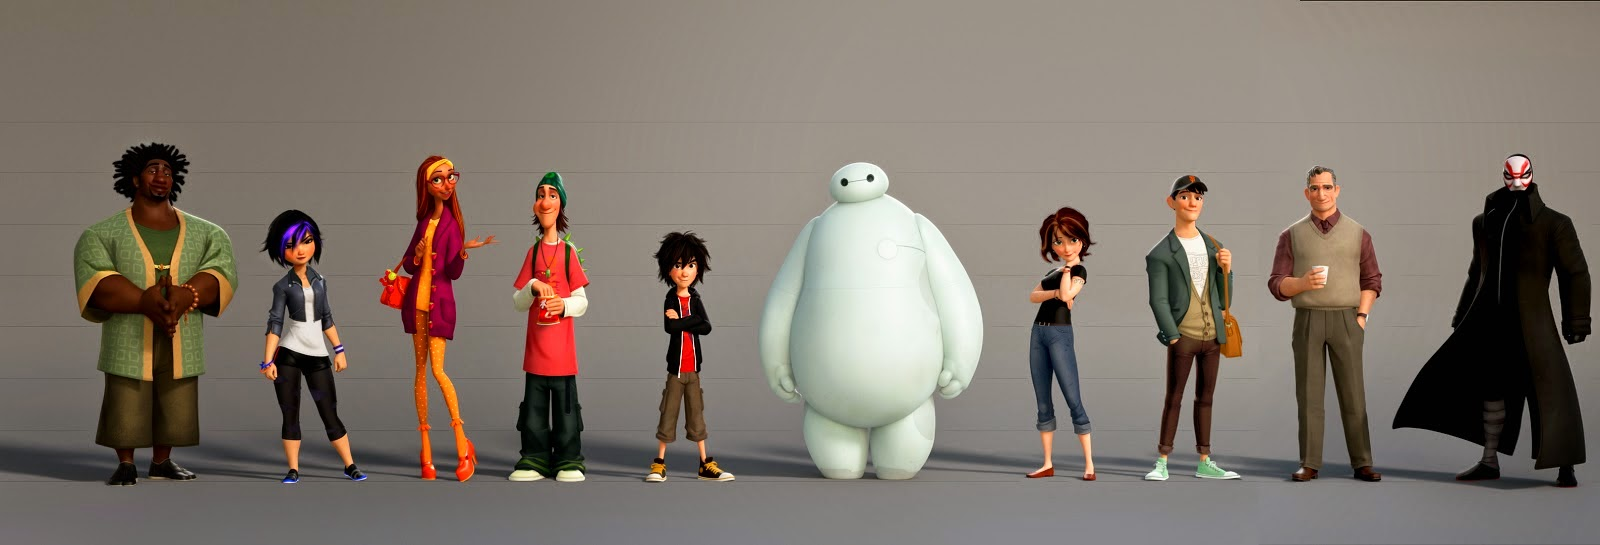 big-hero-6-character-lineup personajes characters walt disney hiro baymax brother hermano honey lemon wasabi fred gogo tia aunt villain